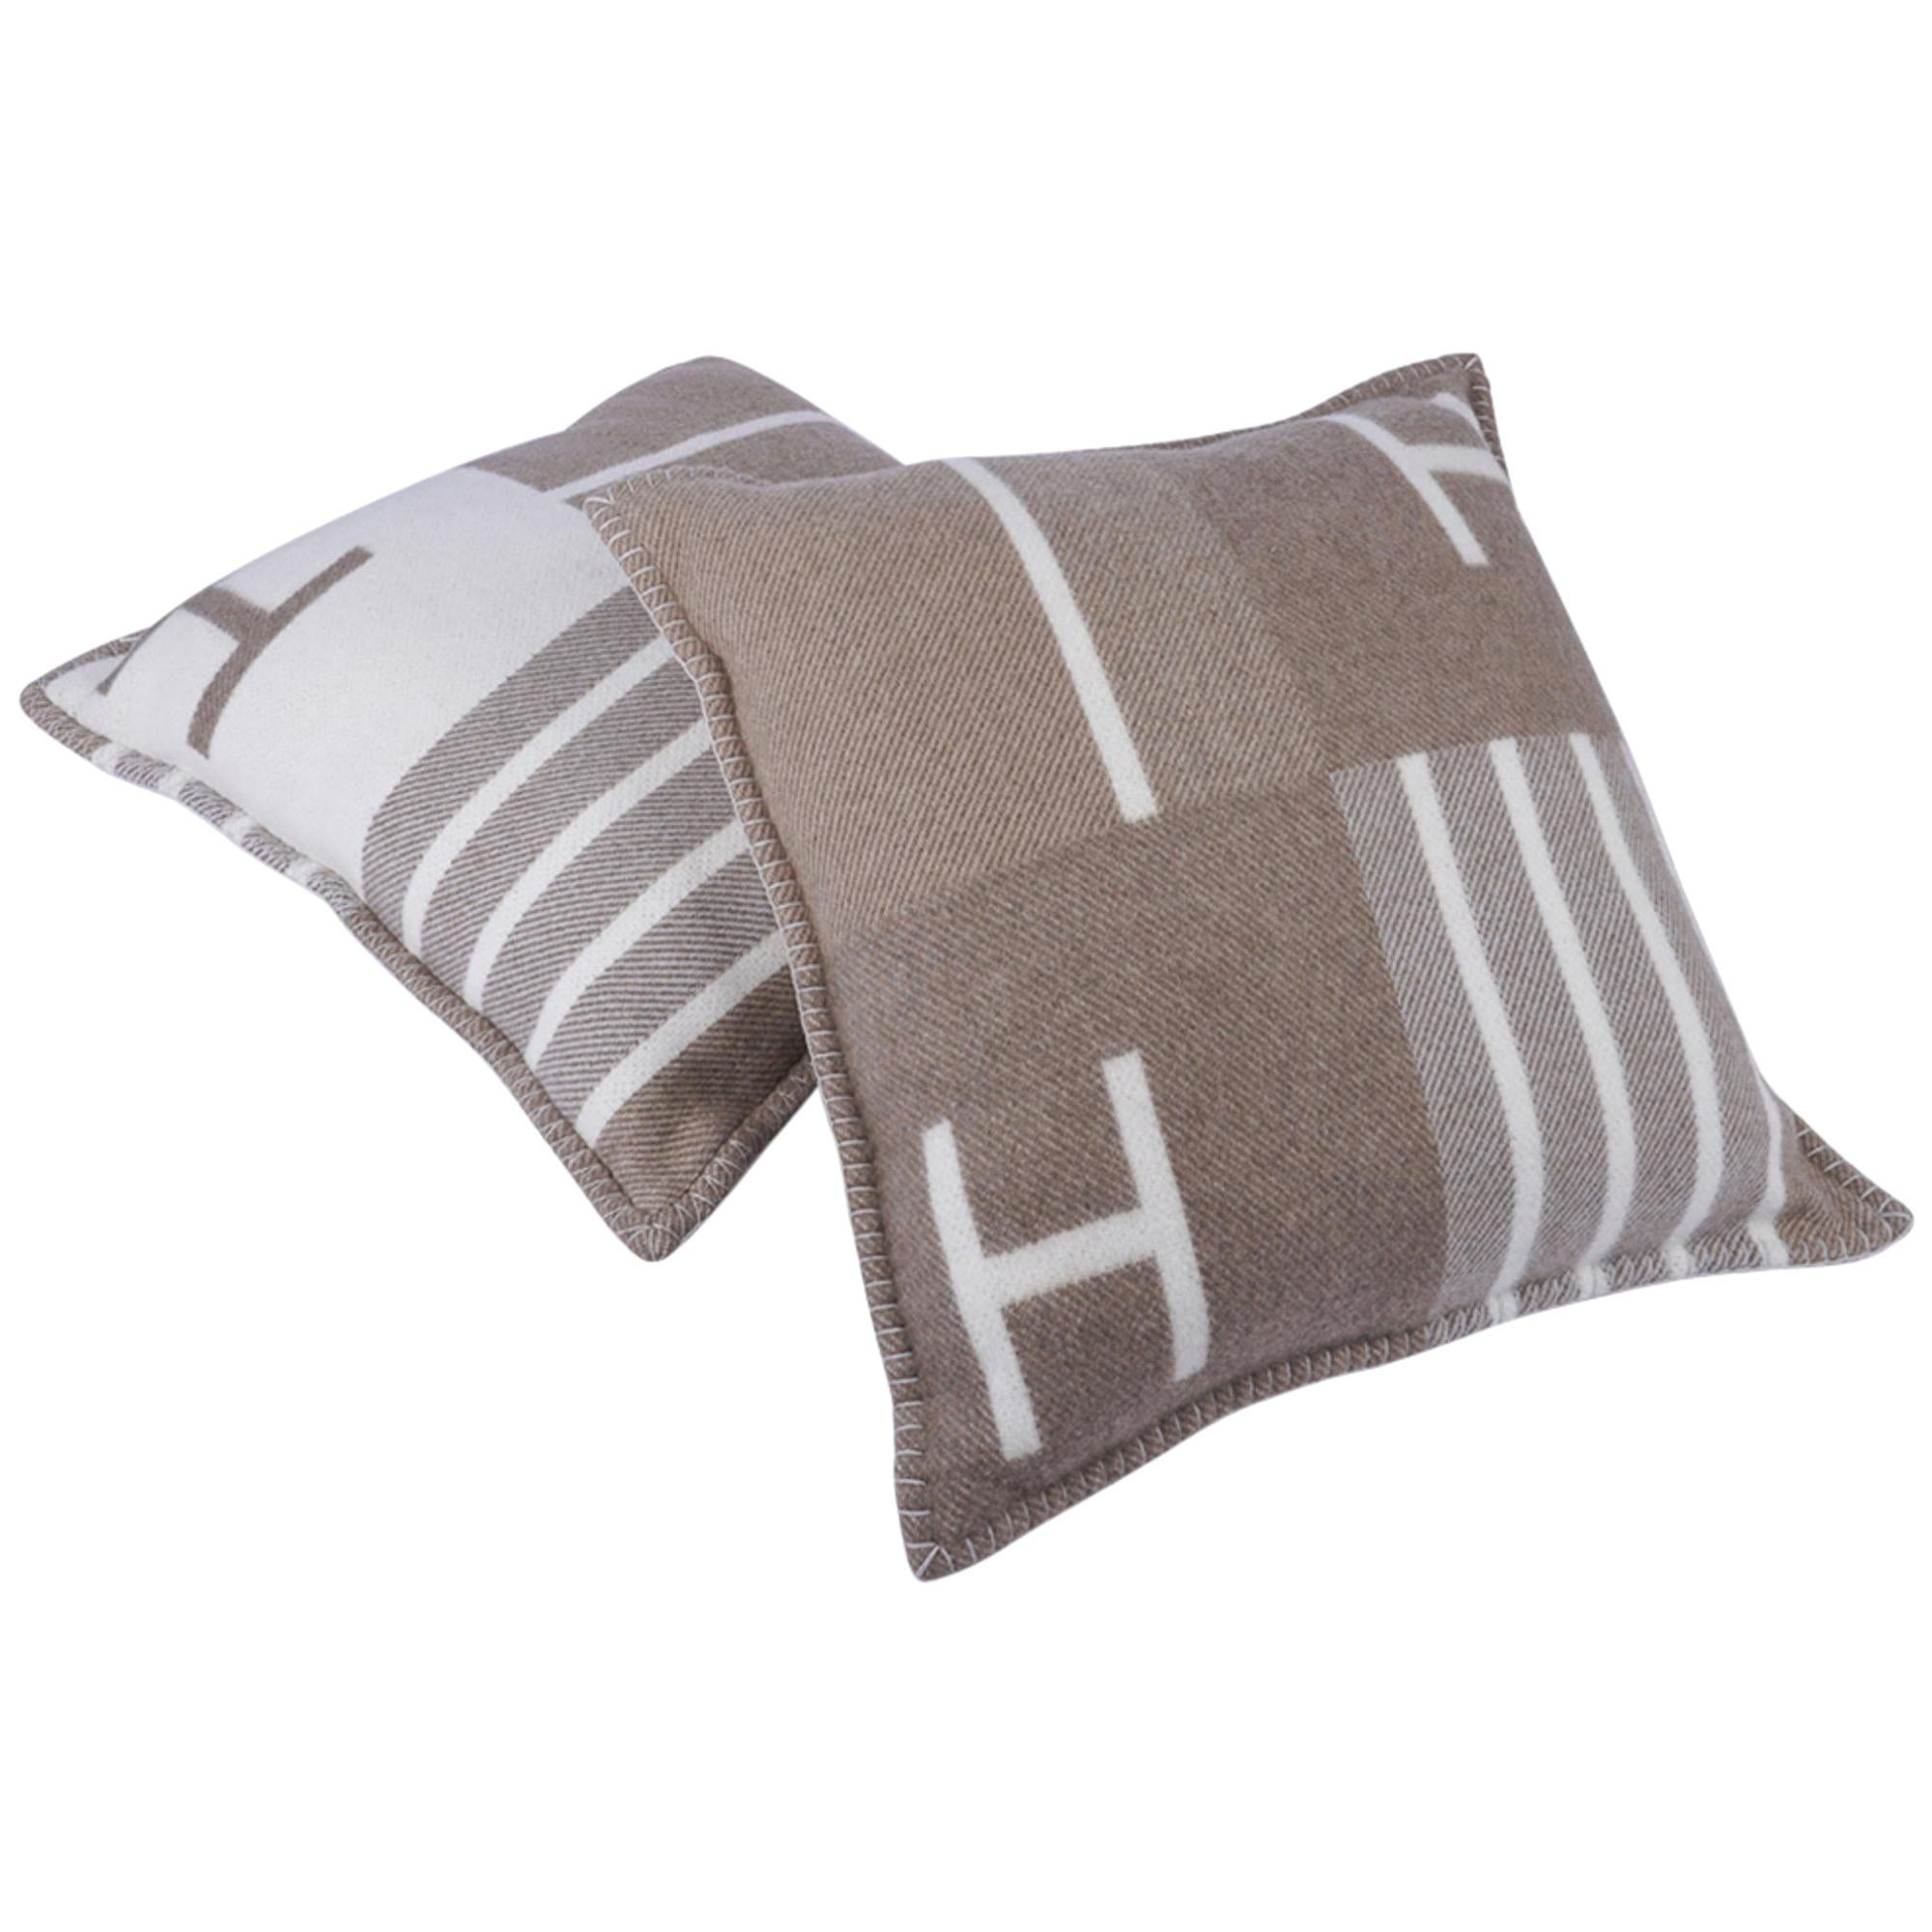 Hermes Pillow Avalon Vibration Naturel Set of Two New w/ Sleepers